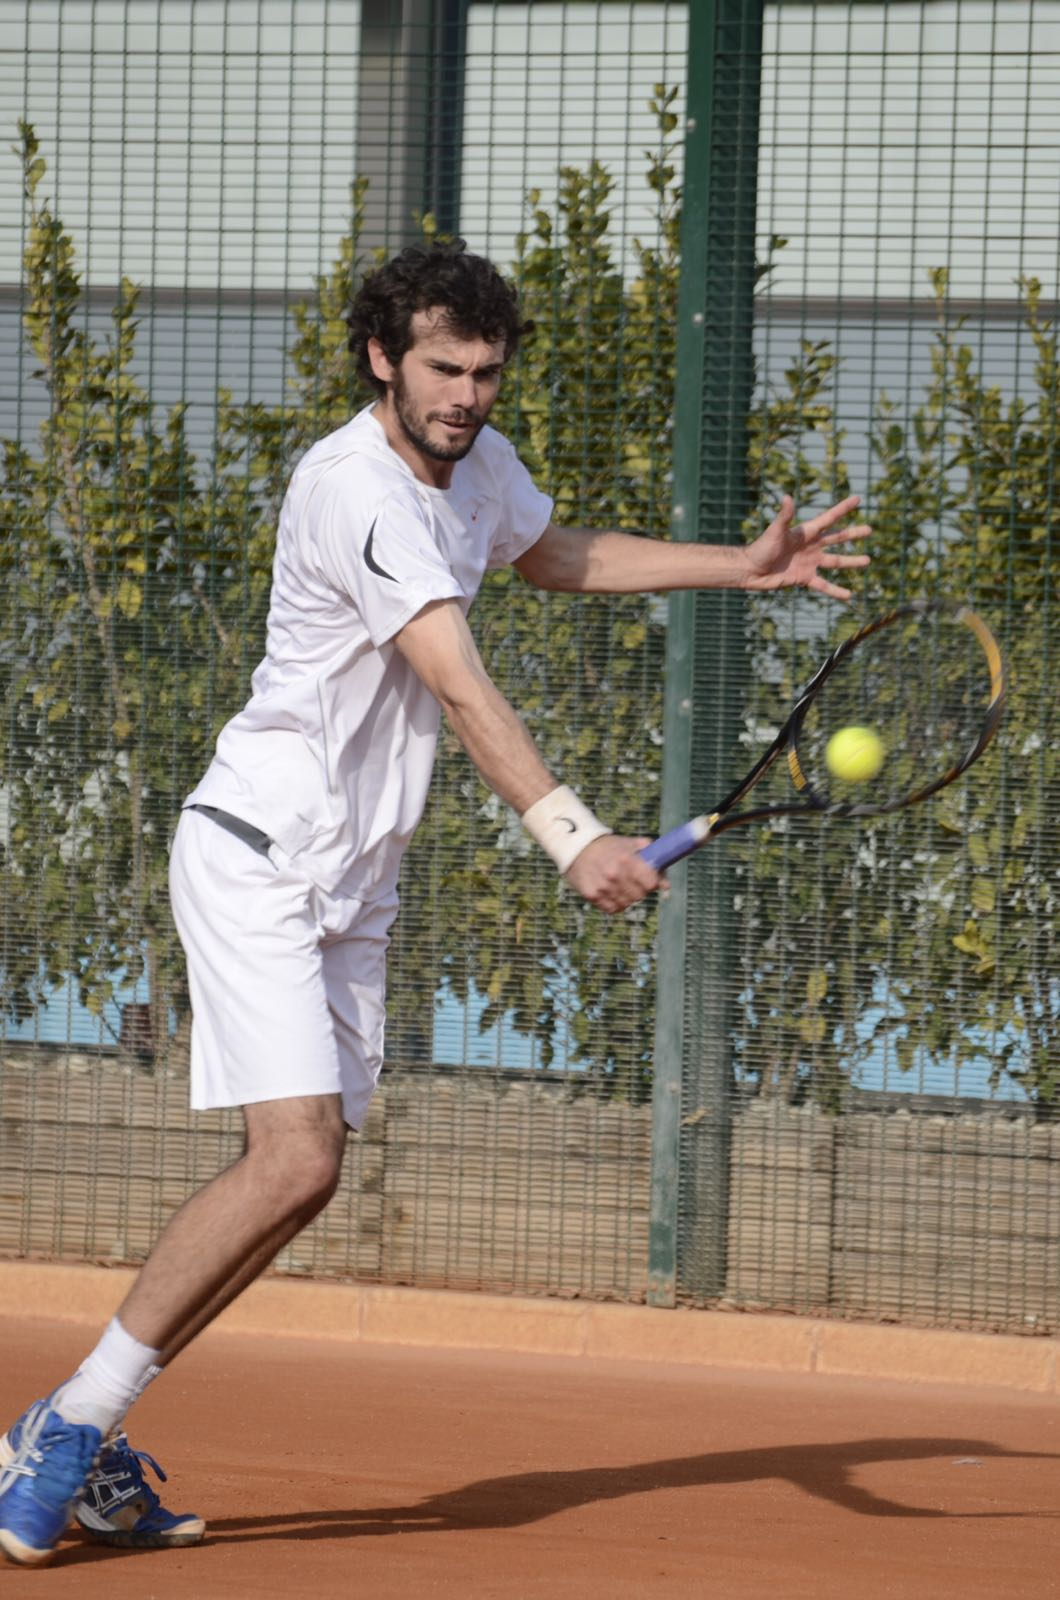 CARLOS-GARCIA-VILLANUEVA-player-scandinavian-tennis-agency